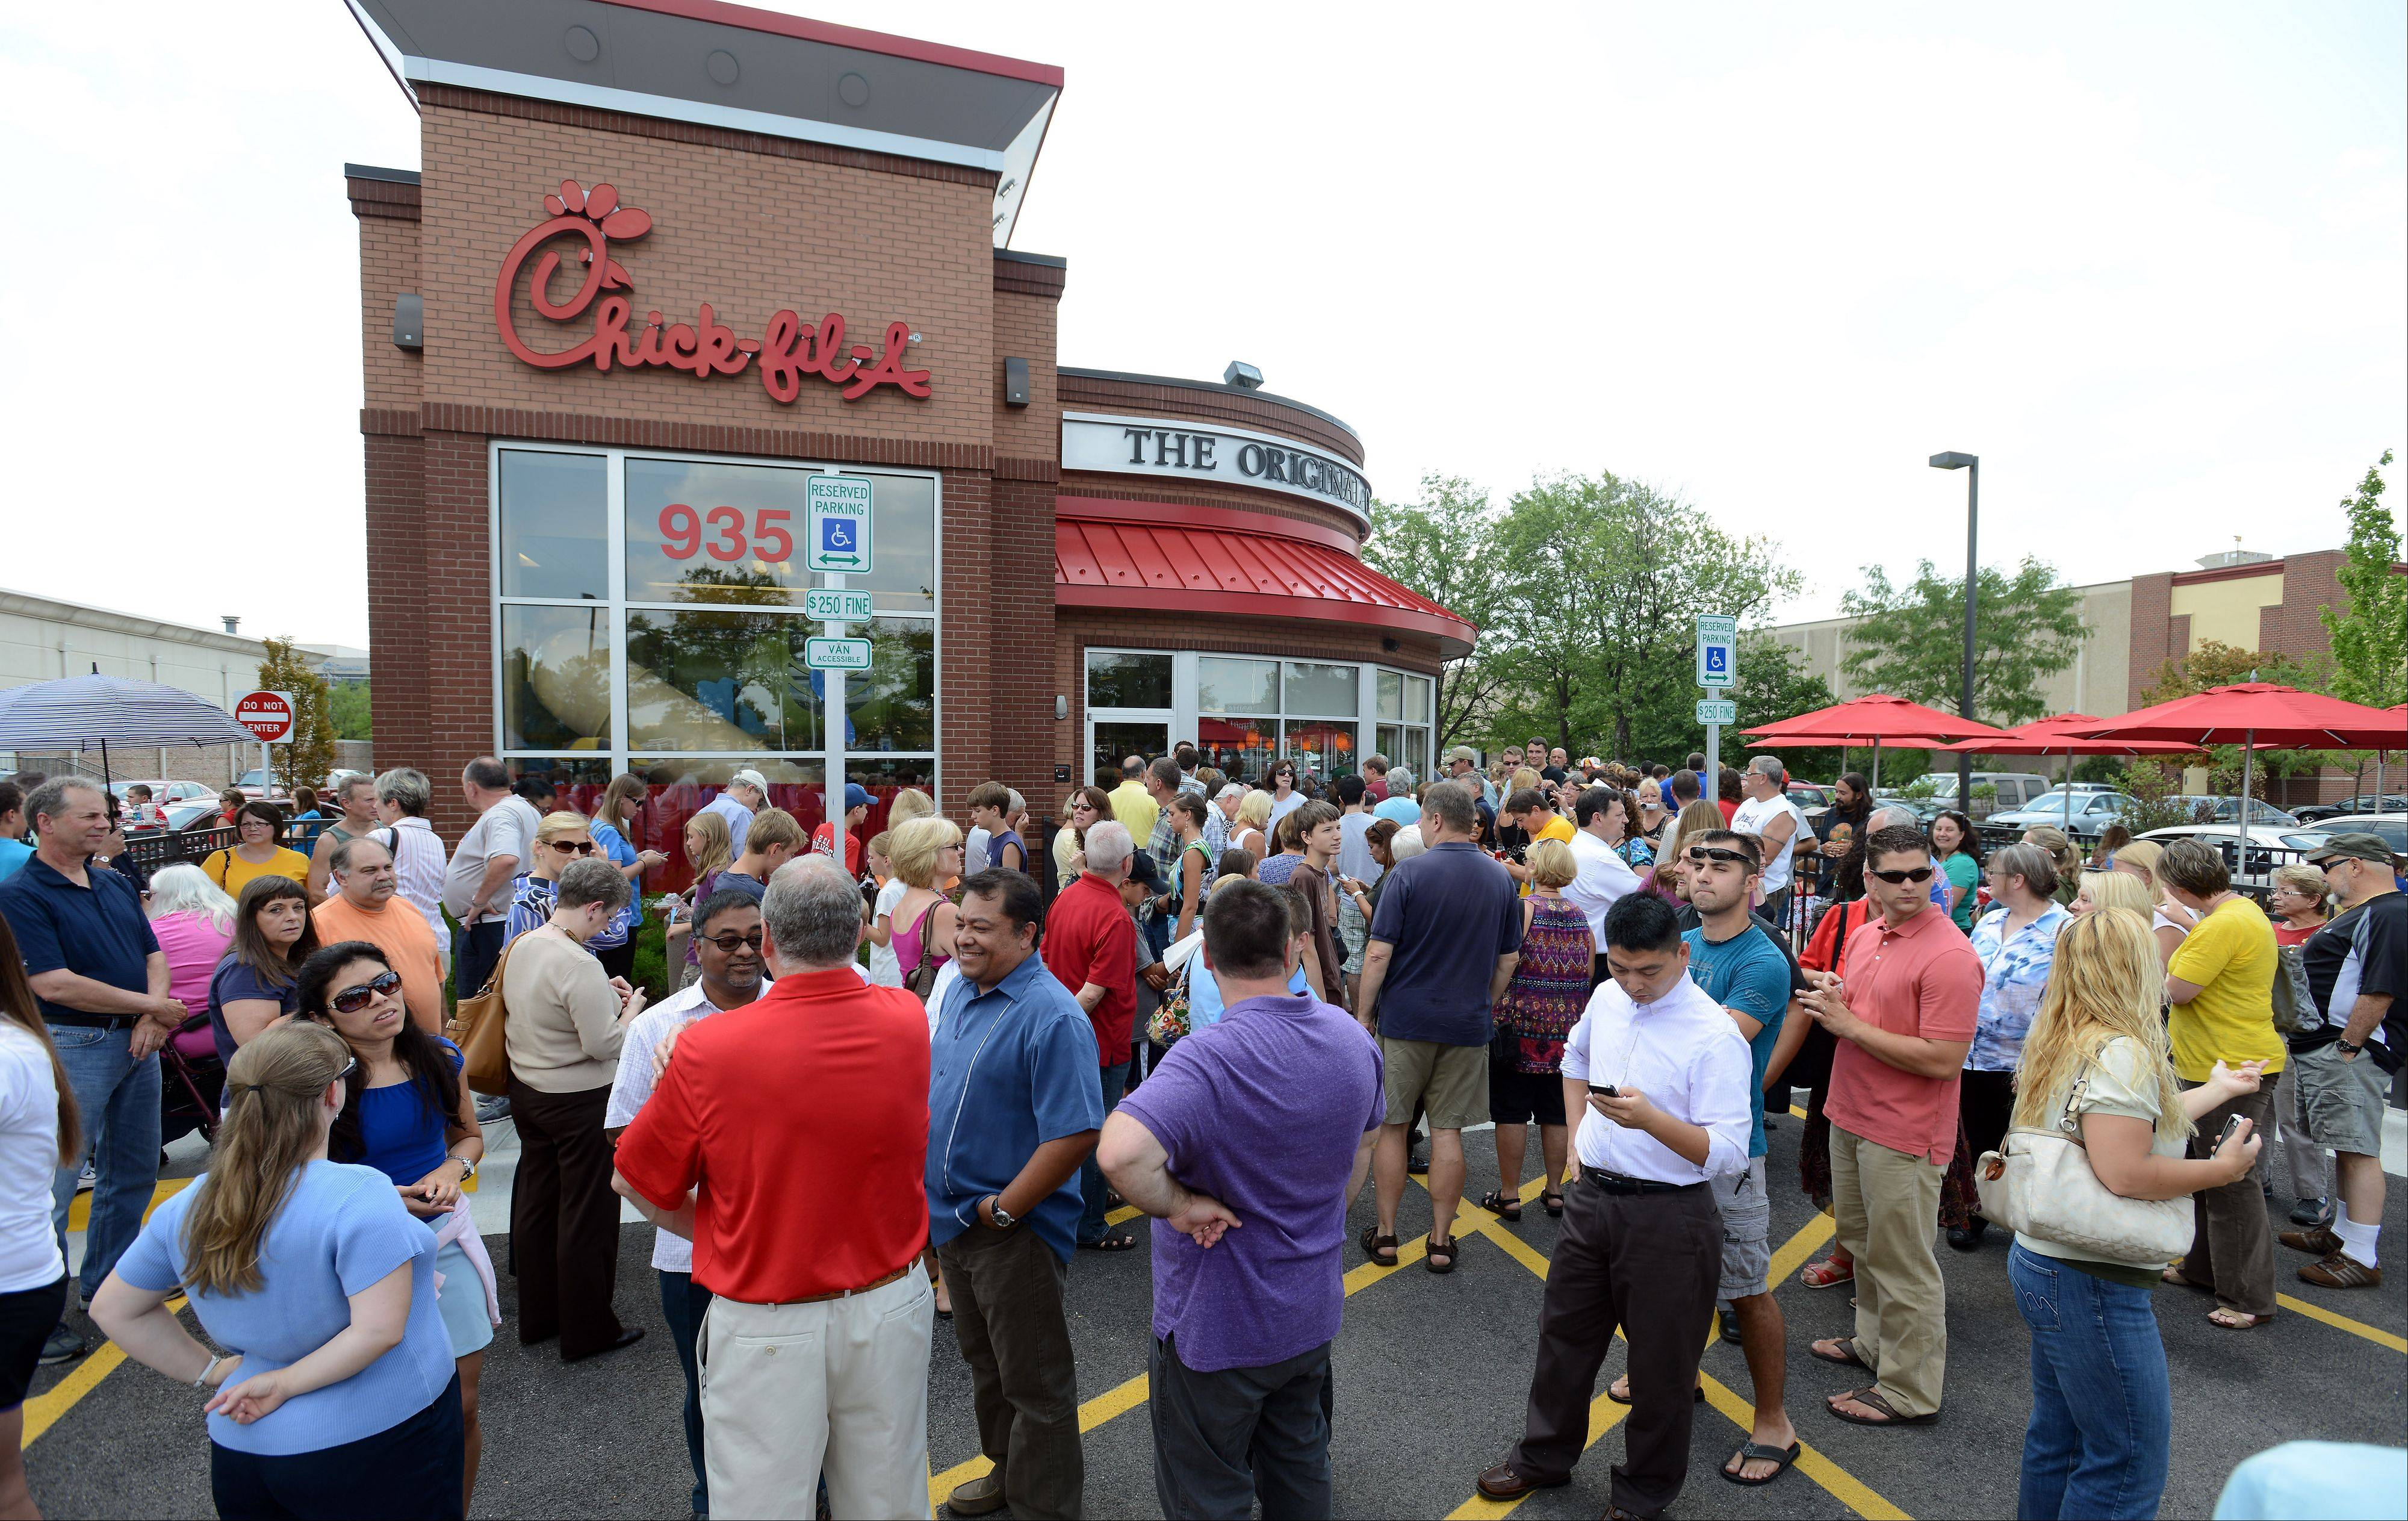 Chick-fil-A supporters turned out at this Schaumburg restaurant Wednesday in a show of support for the company, which has come under fire because of its president's stand against gay marriage.